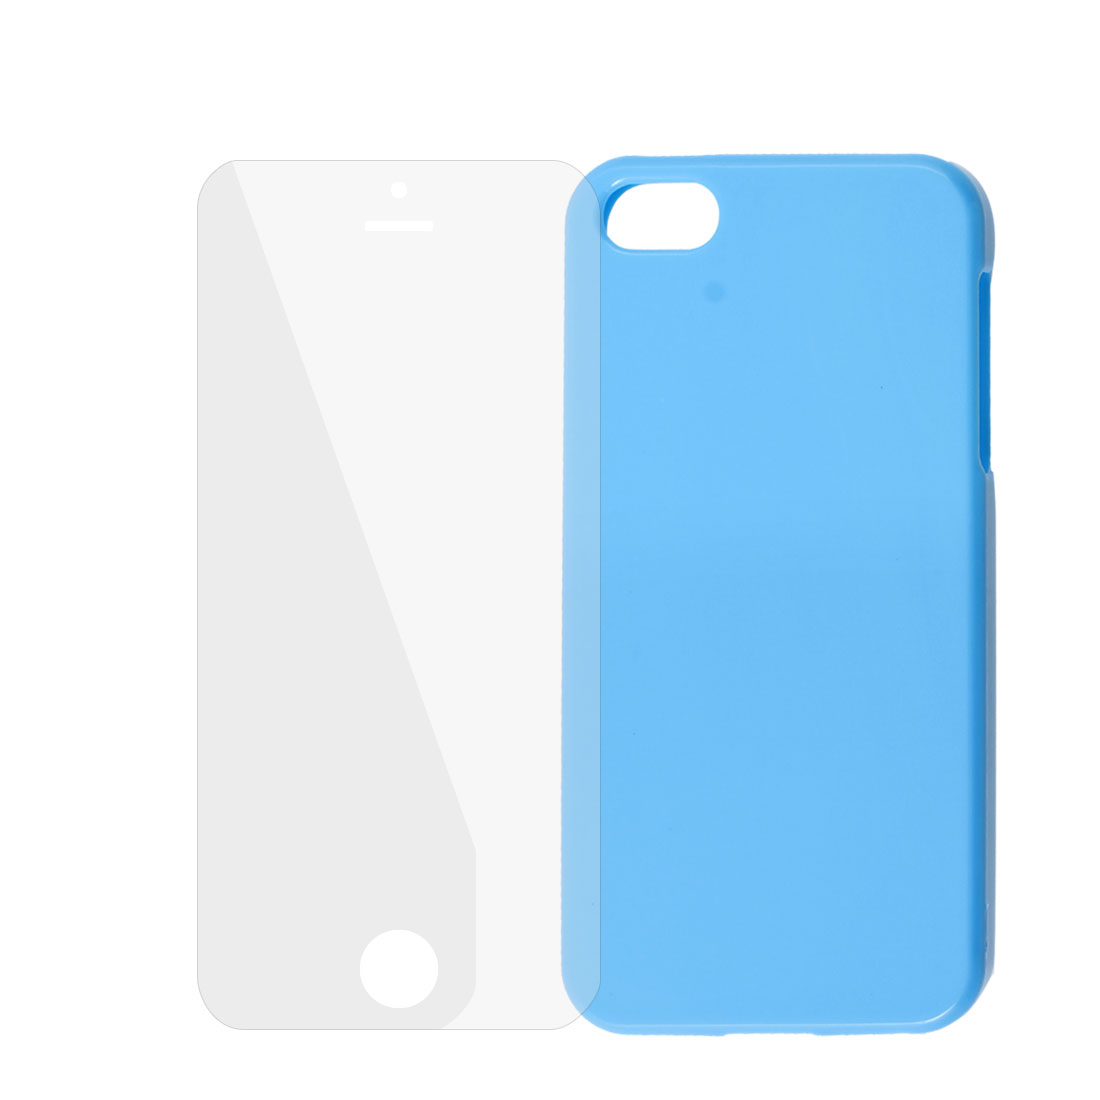 Light Blue Plastic Phone Case + Clear Screen Guard for iPhone 5G 5